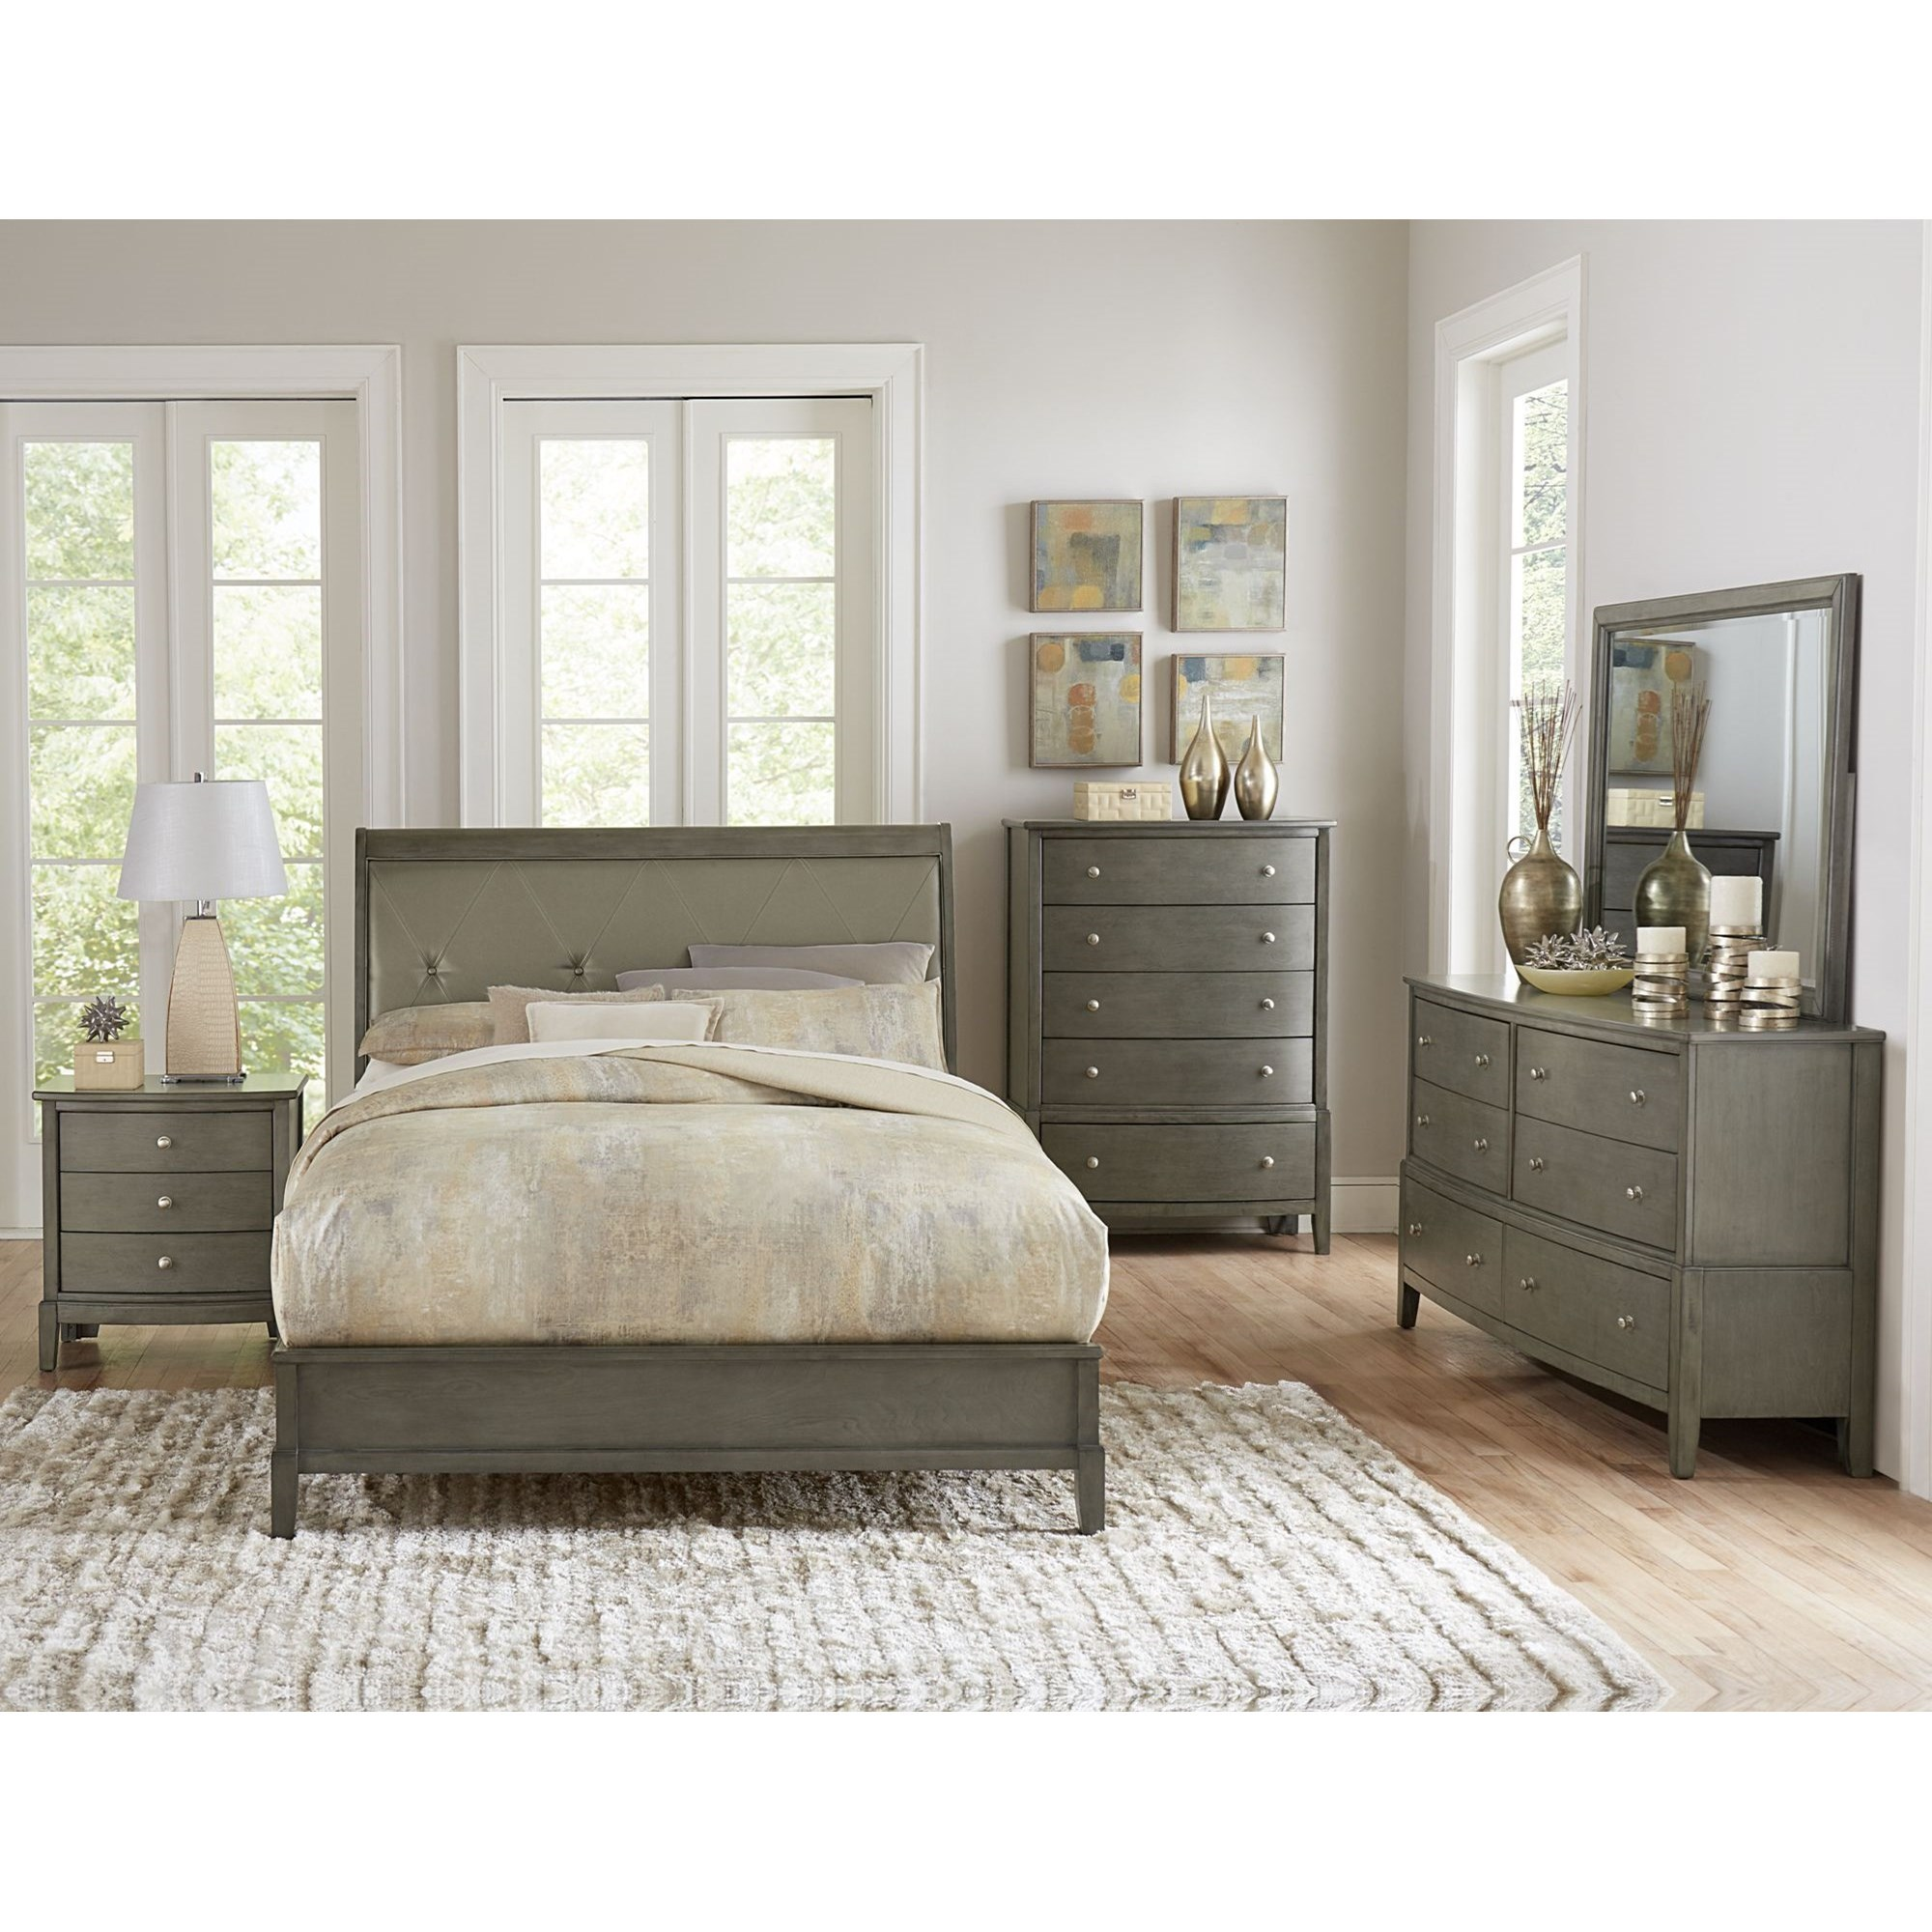 Cotterill Queen Bedroom Group by Homelegance at A1 Furniture & Mattress